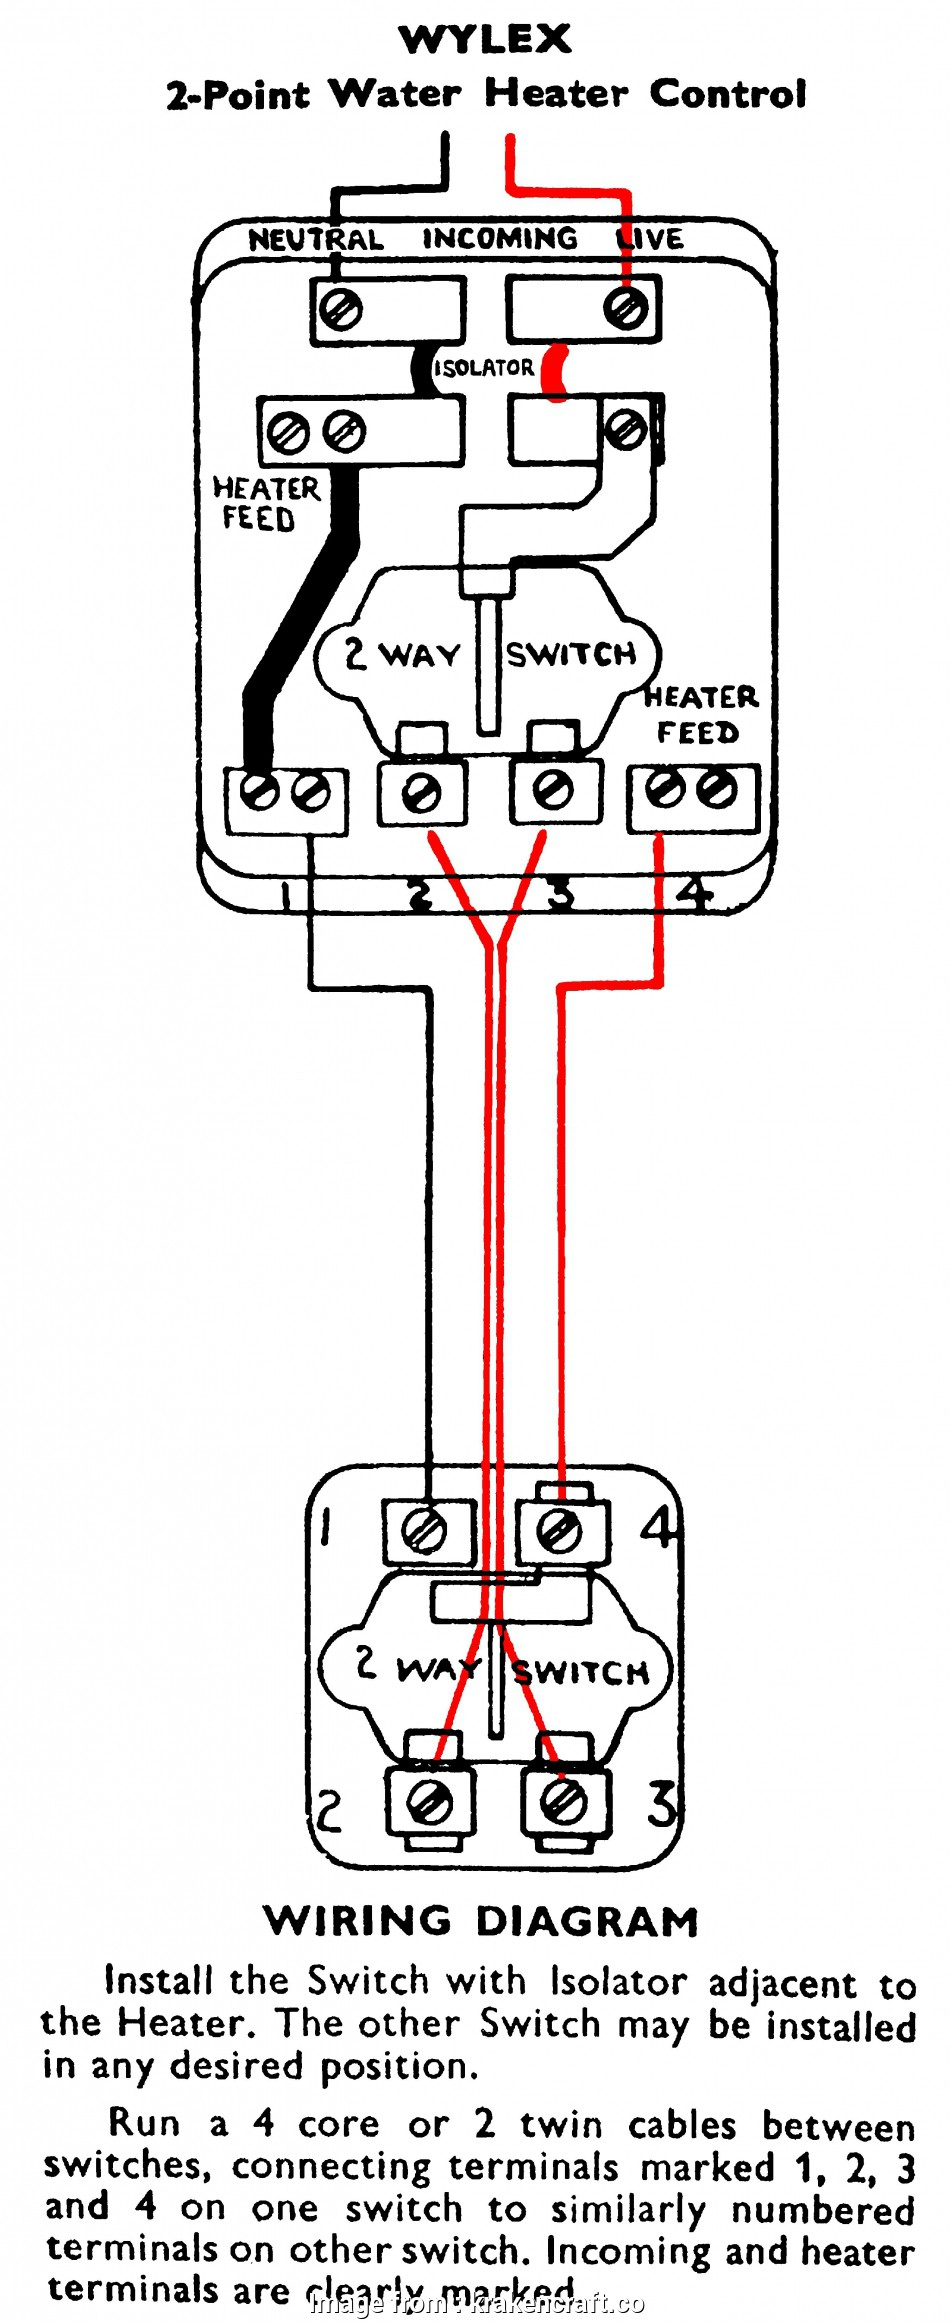 Electric Water Heater Wiring Brilliant Wiring Diagram, 3